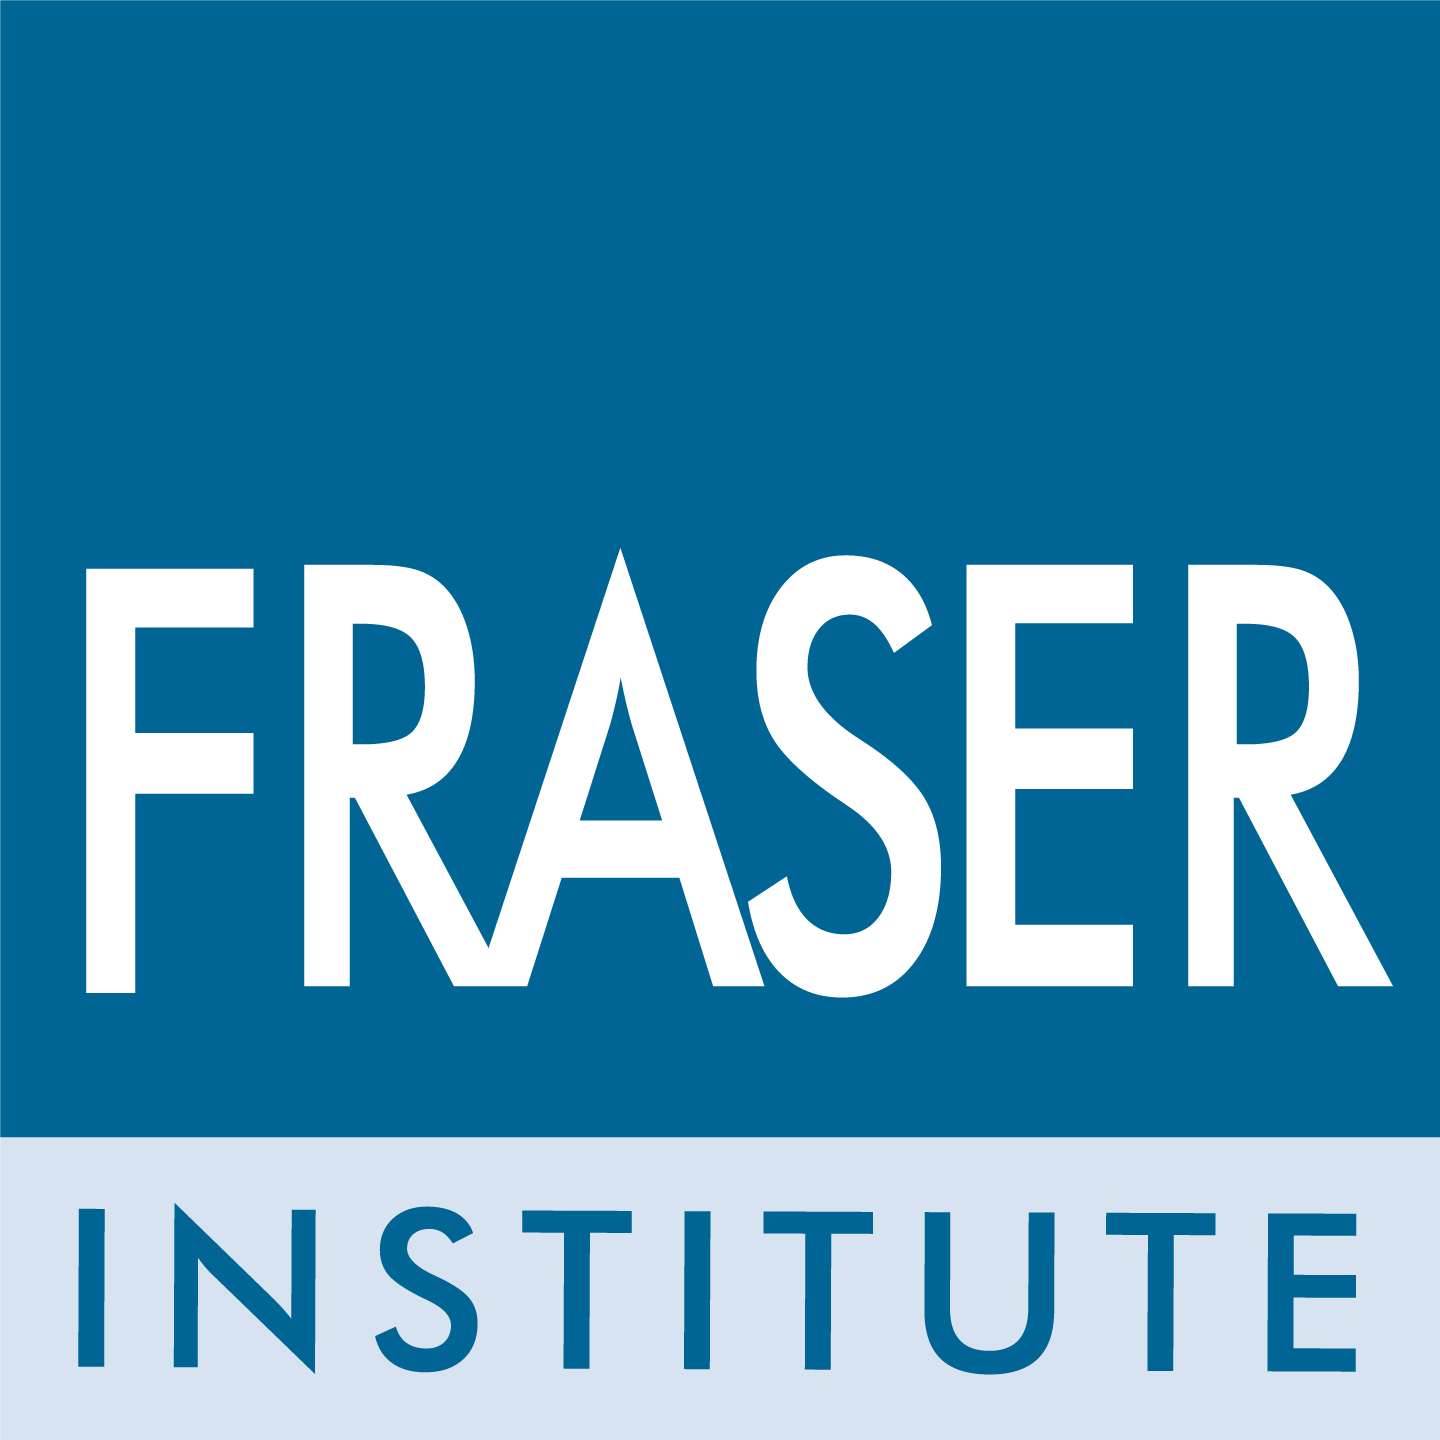 Fraser Institute News Release: Ottawa spending 50% more per Canadian in 2020 than during the 2009 recession: $13,226 vs